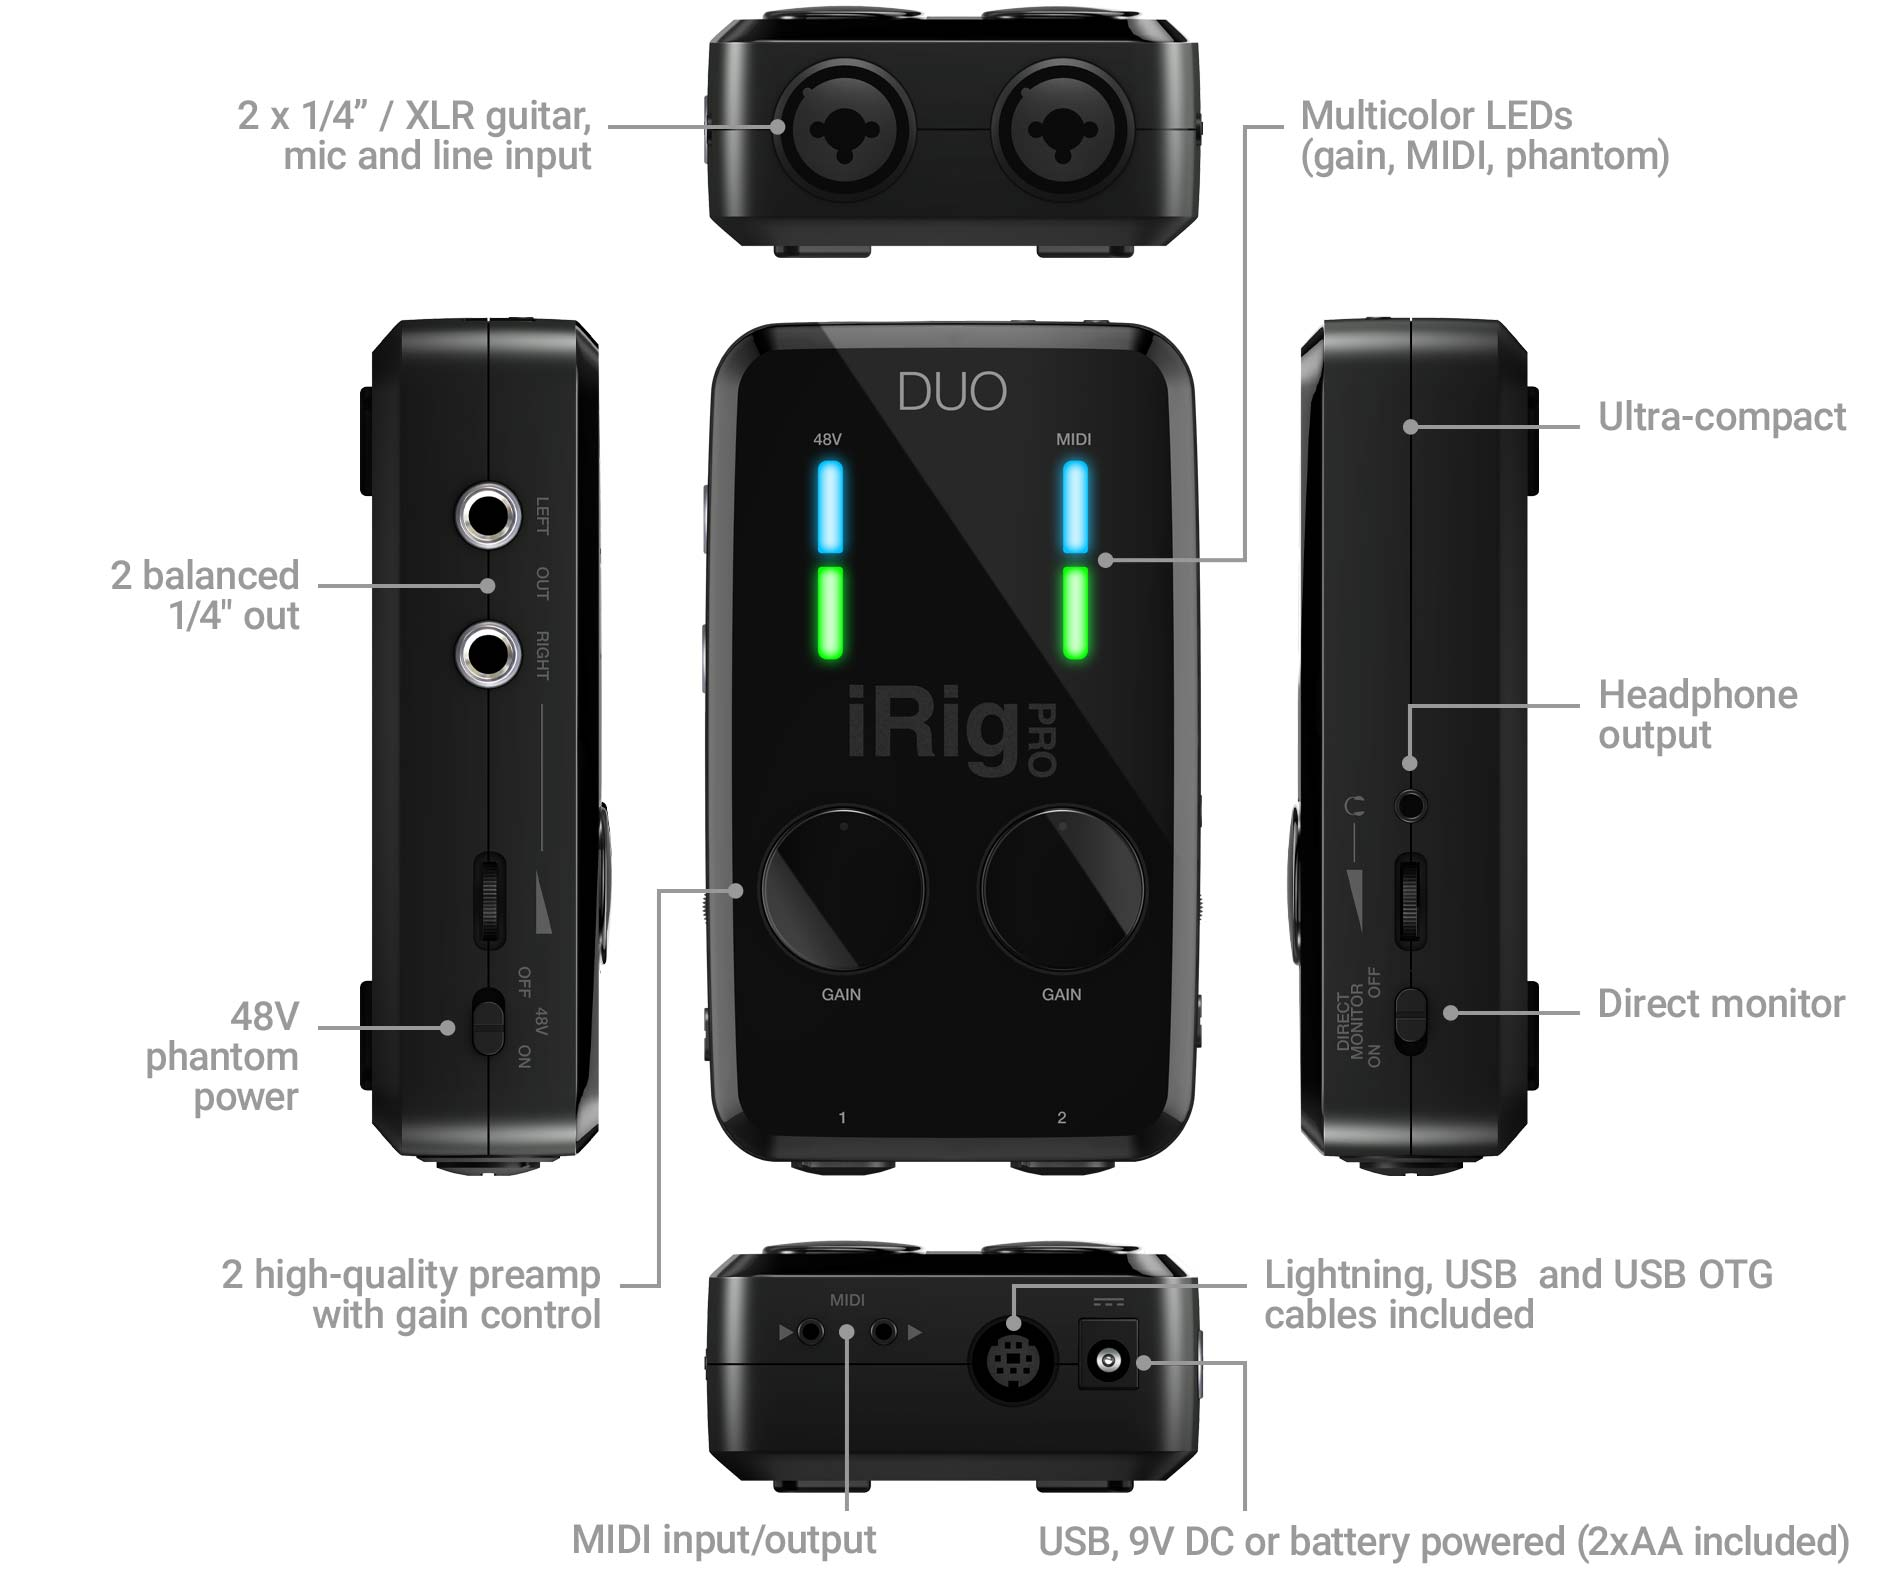 Ik Multimedia Irig Pro Duo Wiring Diagram Further For Xlr To 1 4 Stereo Jack First It Lets You Go Off The Grid And Record Great Audio Anywhere Thanks Its Comprehensive Powering Options True Mobility Can Be